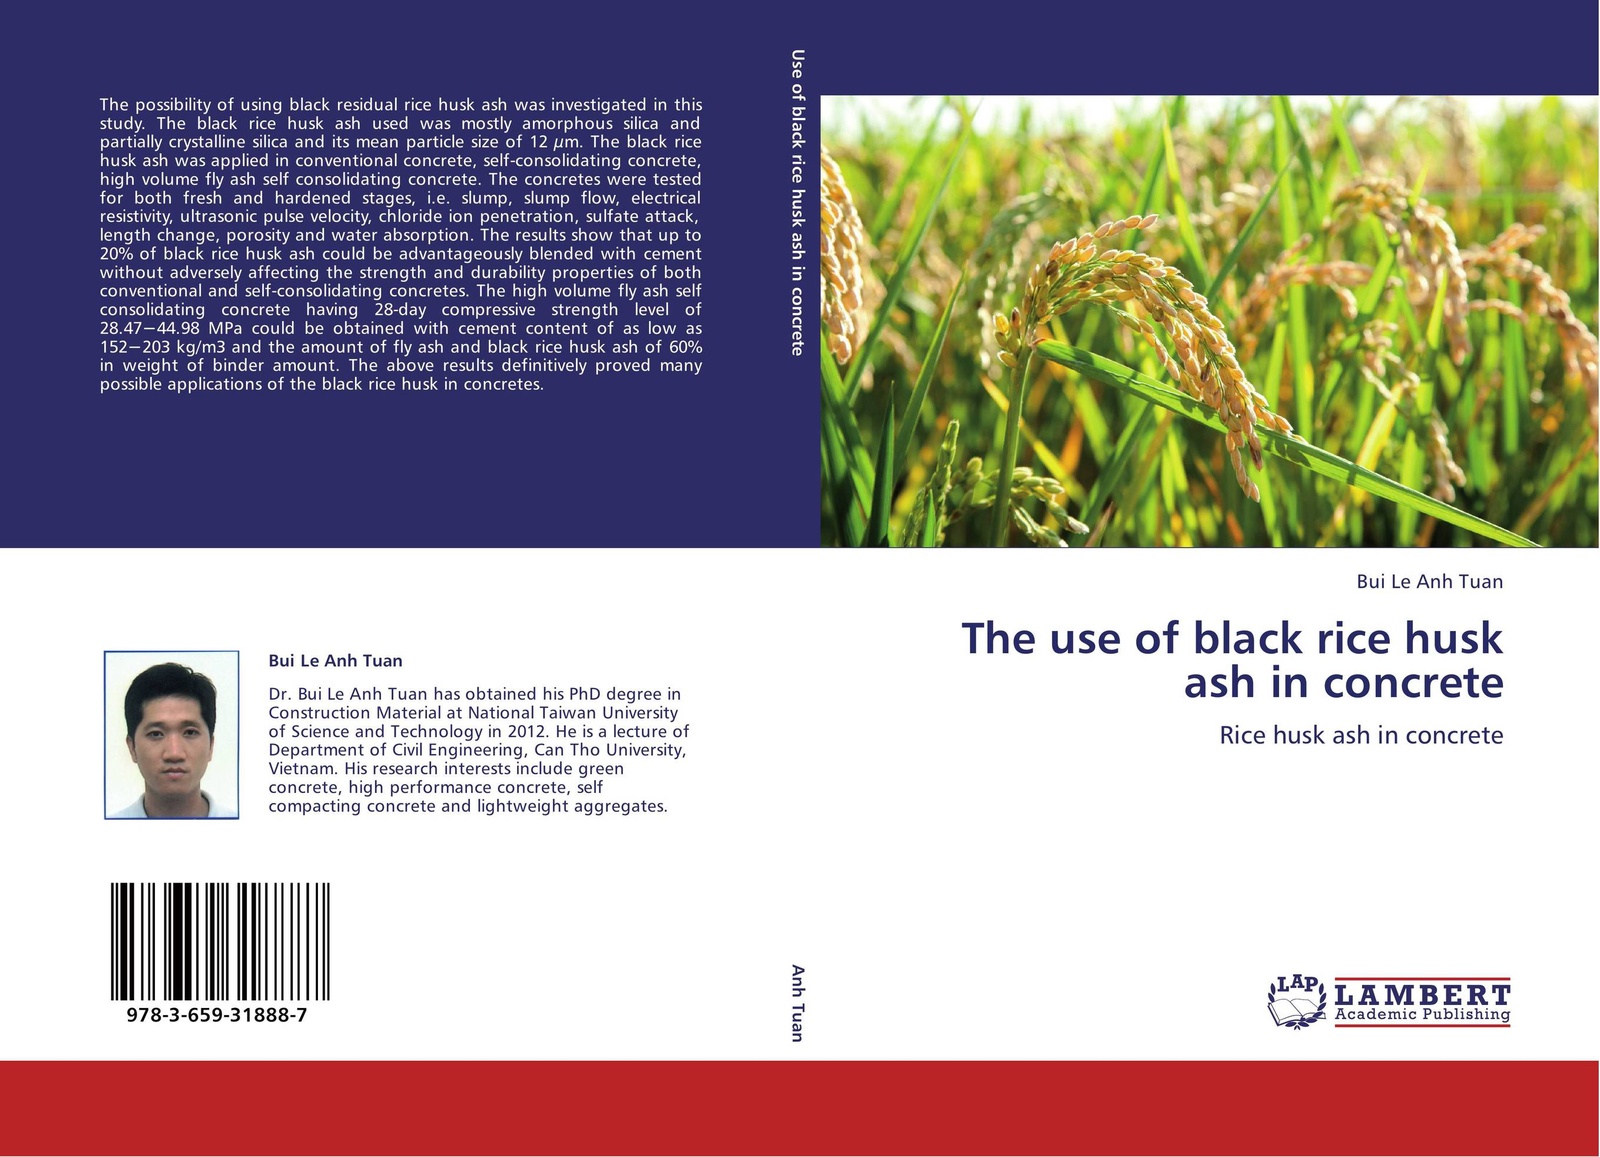 Bui Le Anh Tuan The use of black rice husk ash in concrete